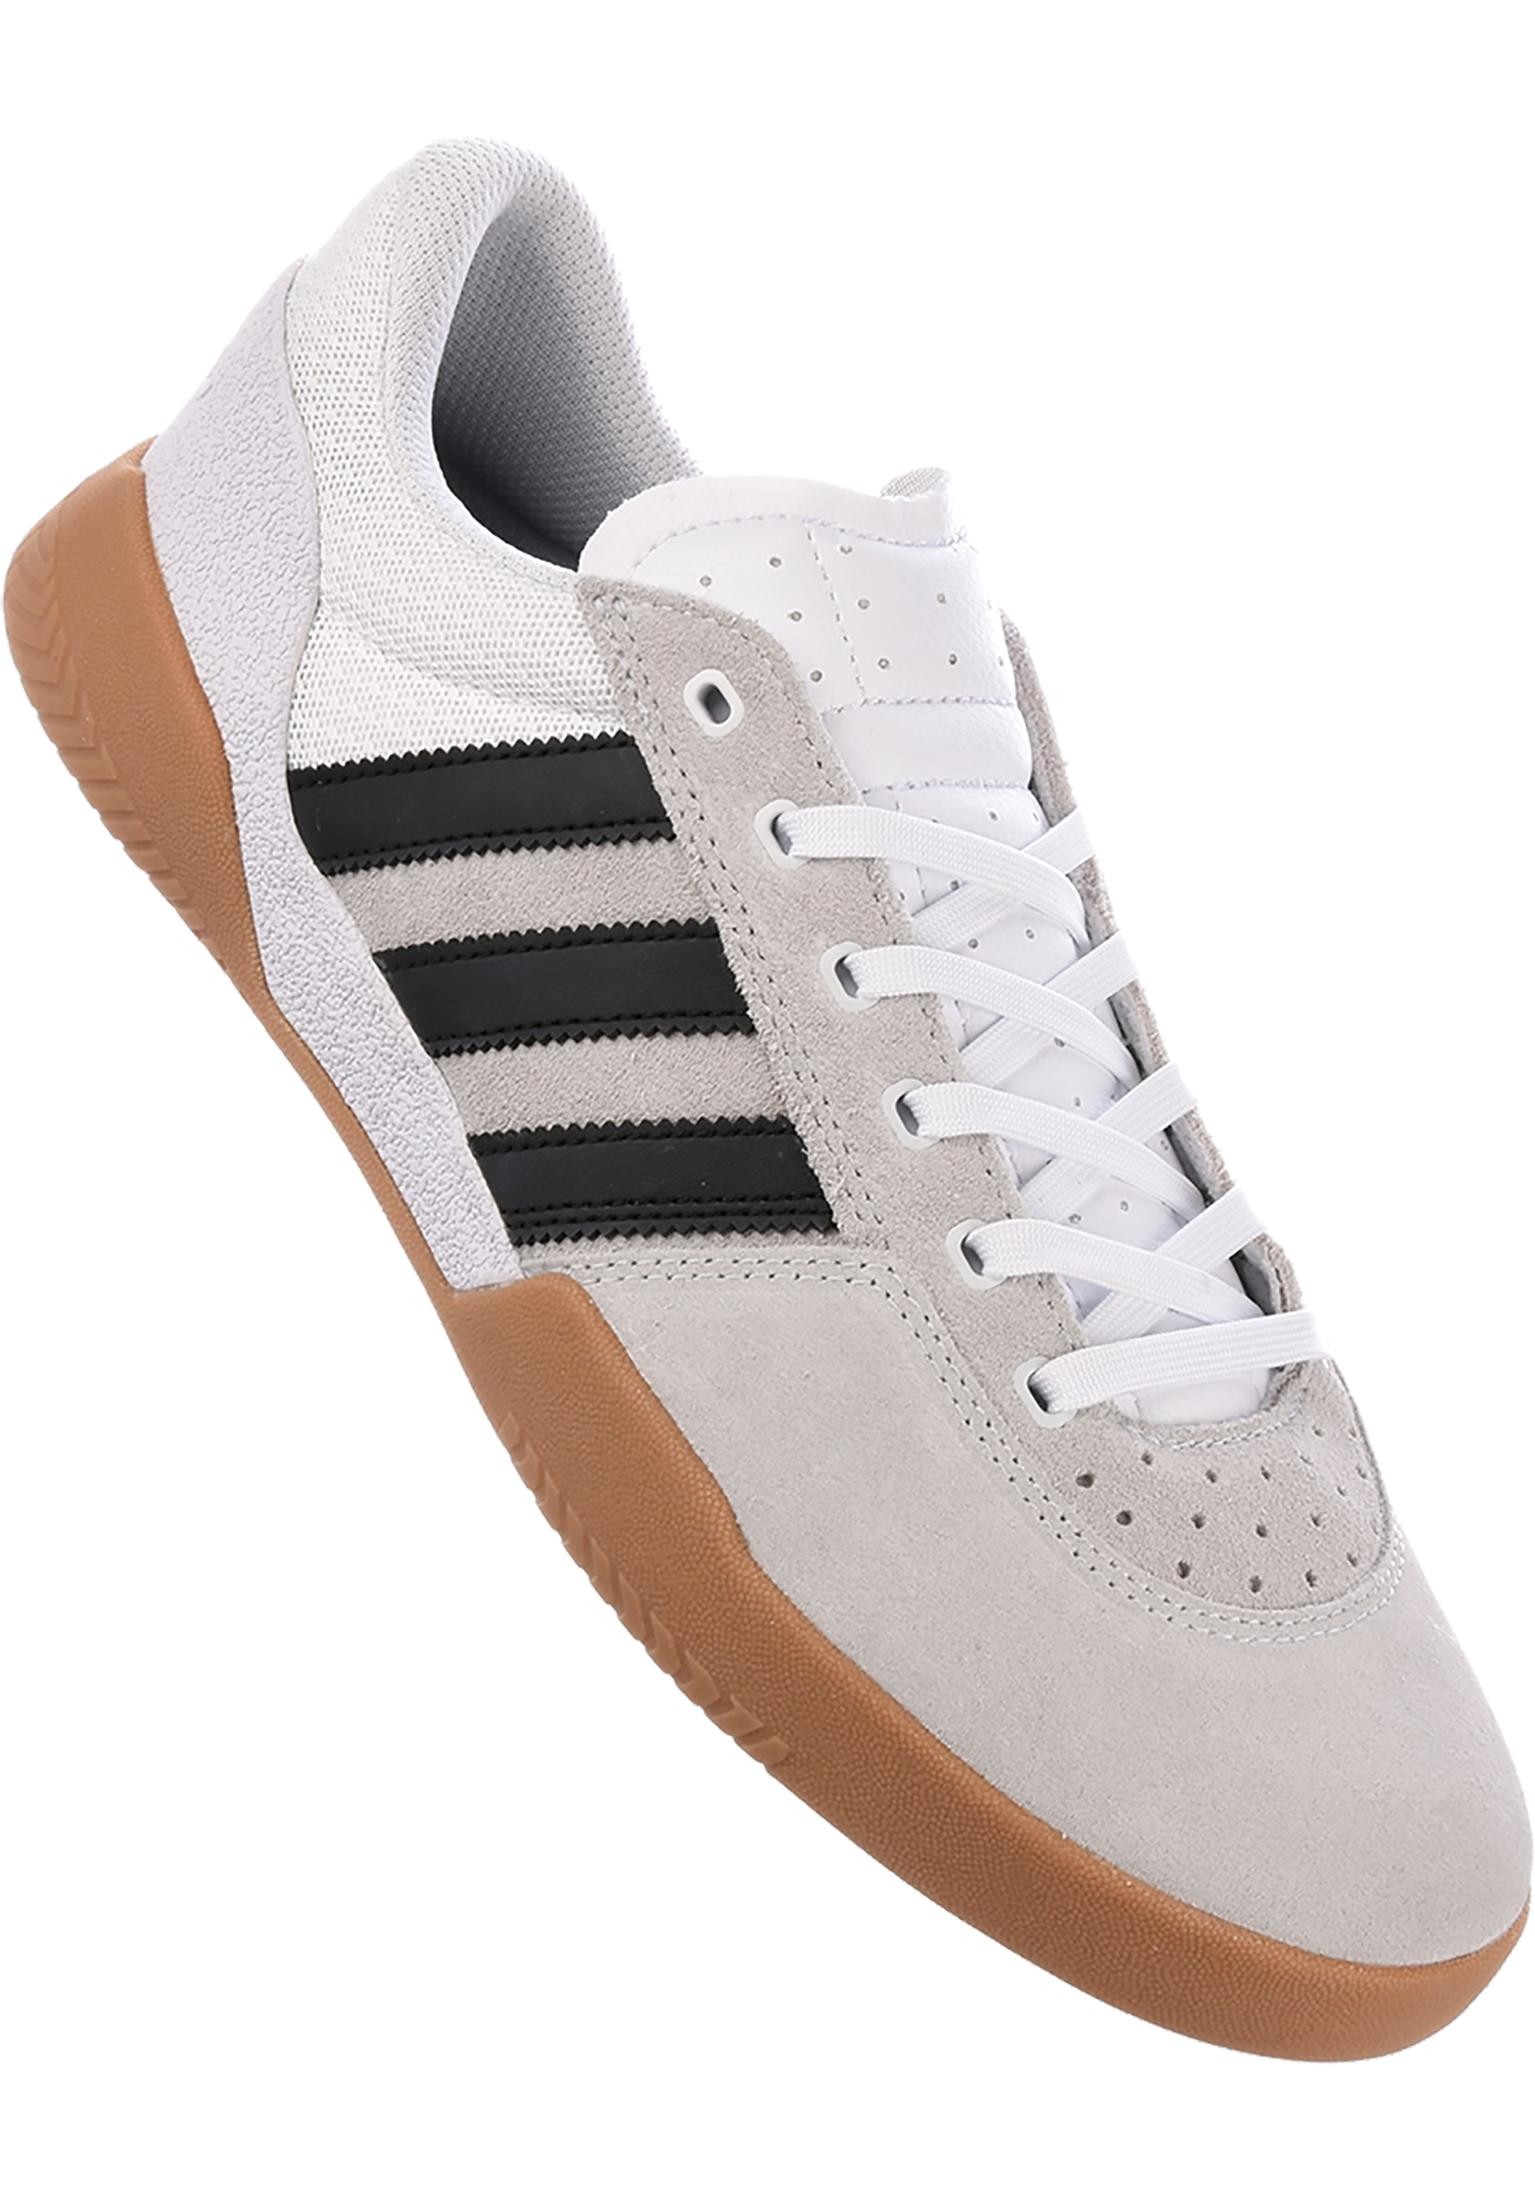 7bfec7e15db647 City Cup adidas-skateboarding All Shoes in white-black-gum for Men ...